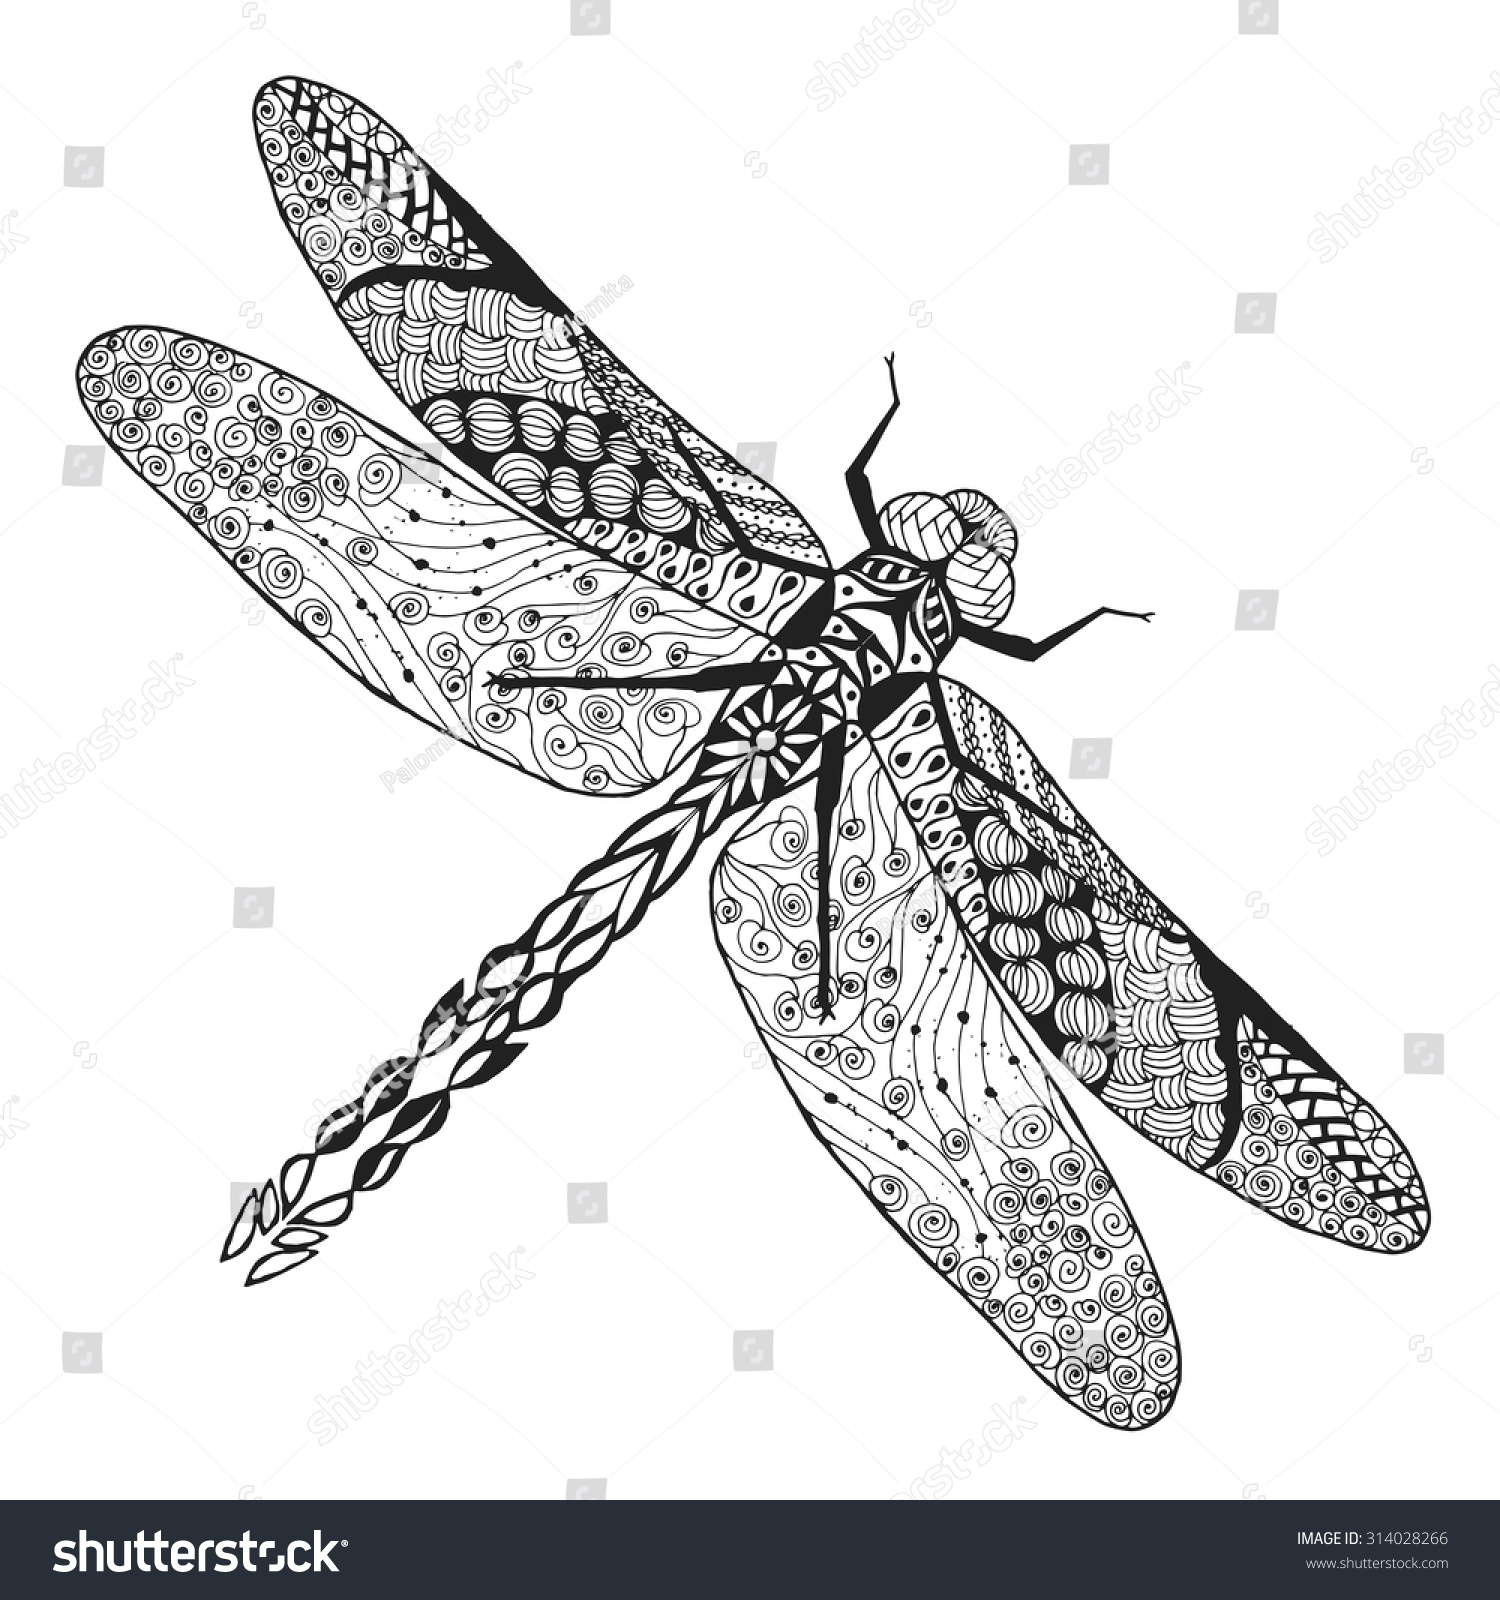 dragonfly animals hand drawn doodle insect stock vector 314028266